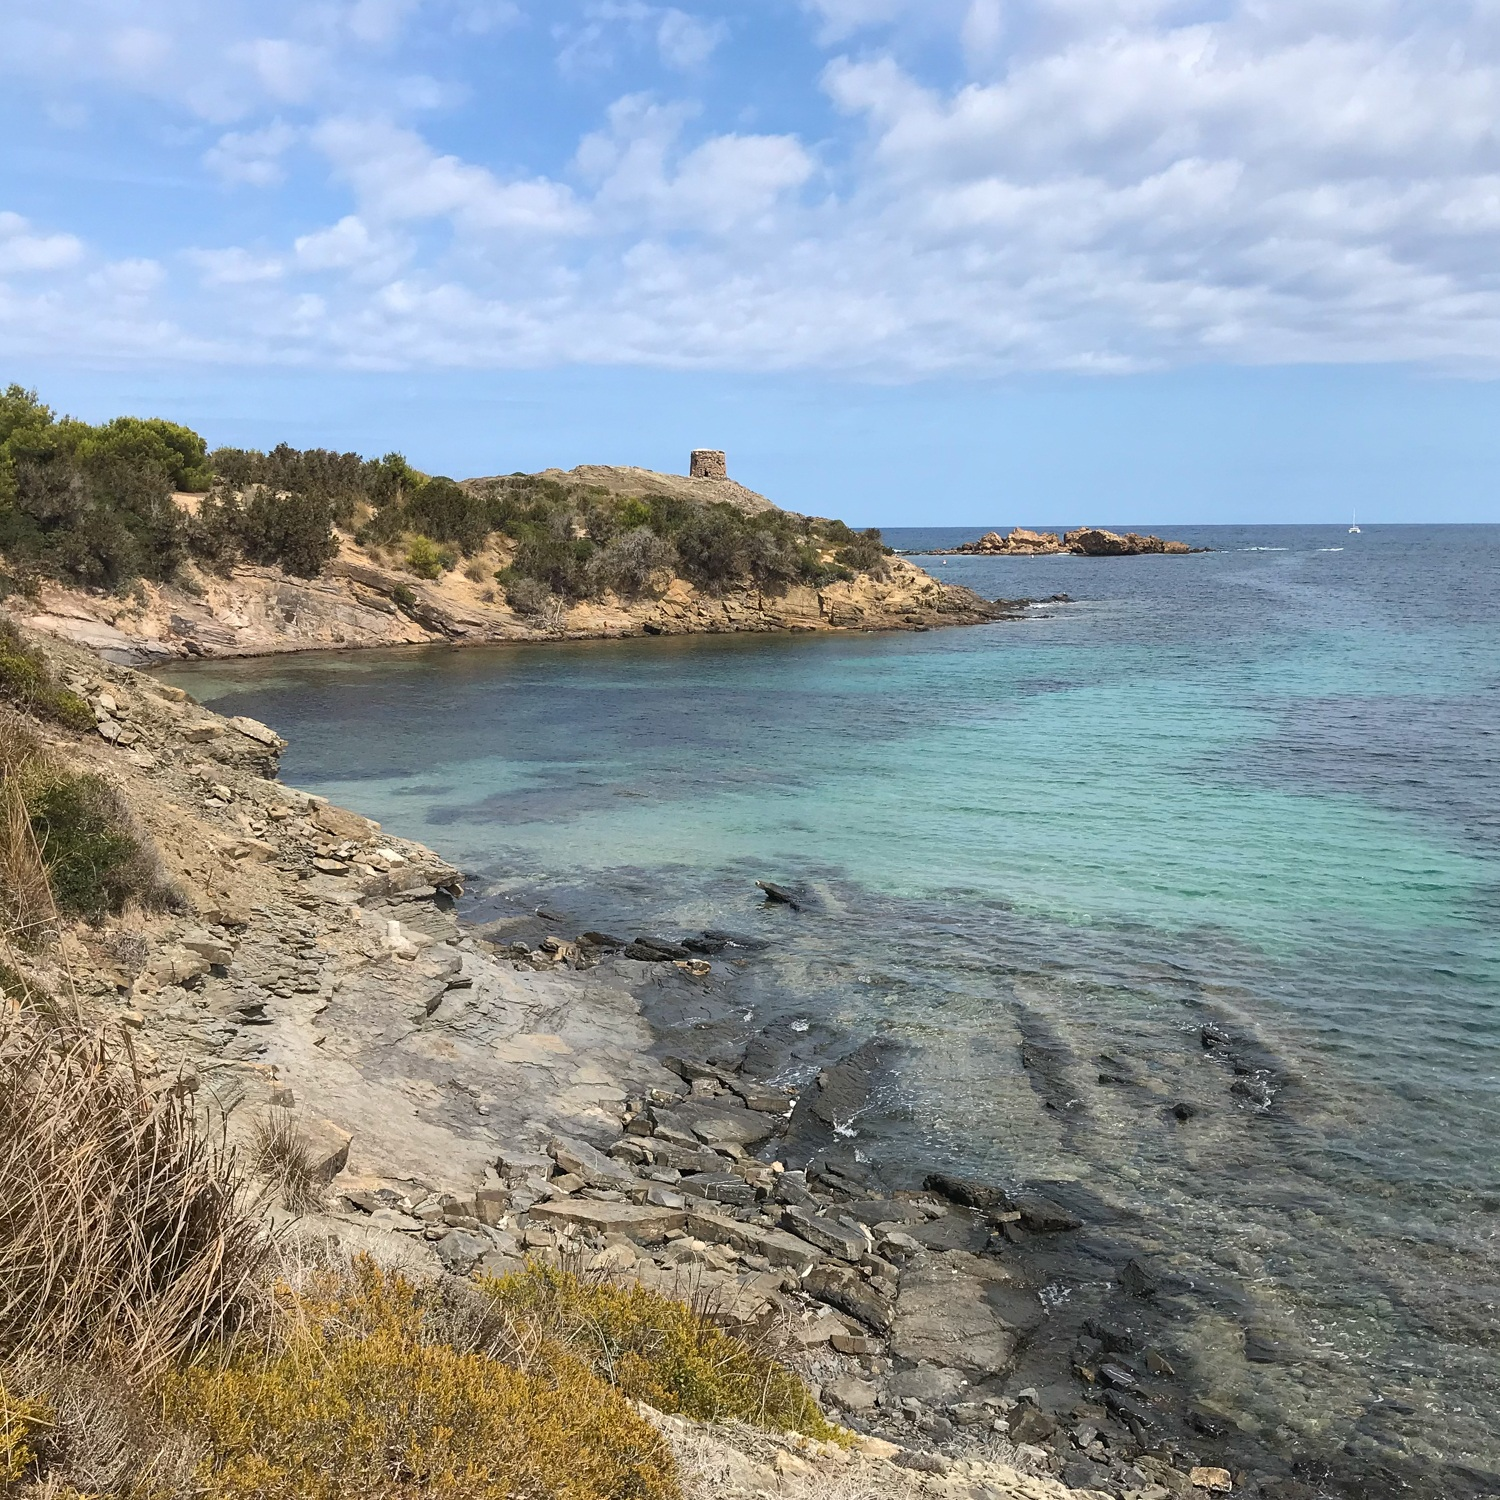 North coast - Cami de Cavalls Menorca Photo Heatheronhertravels.com